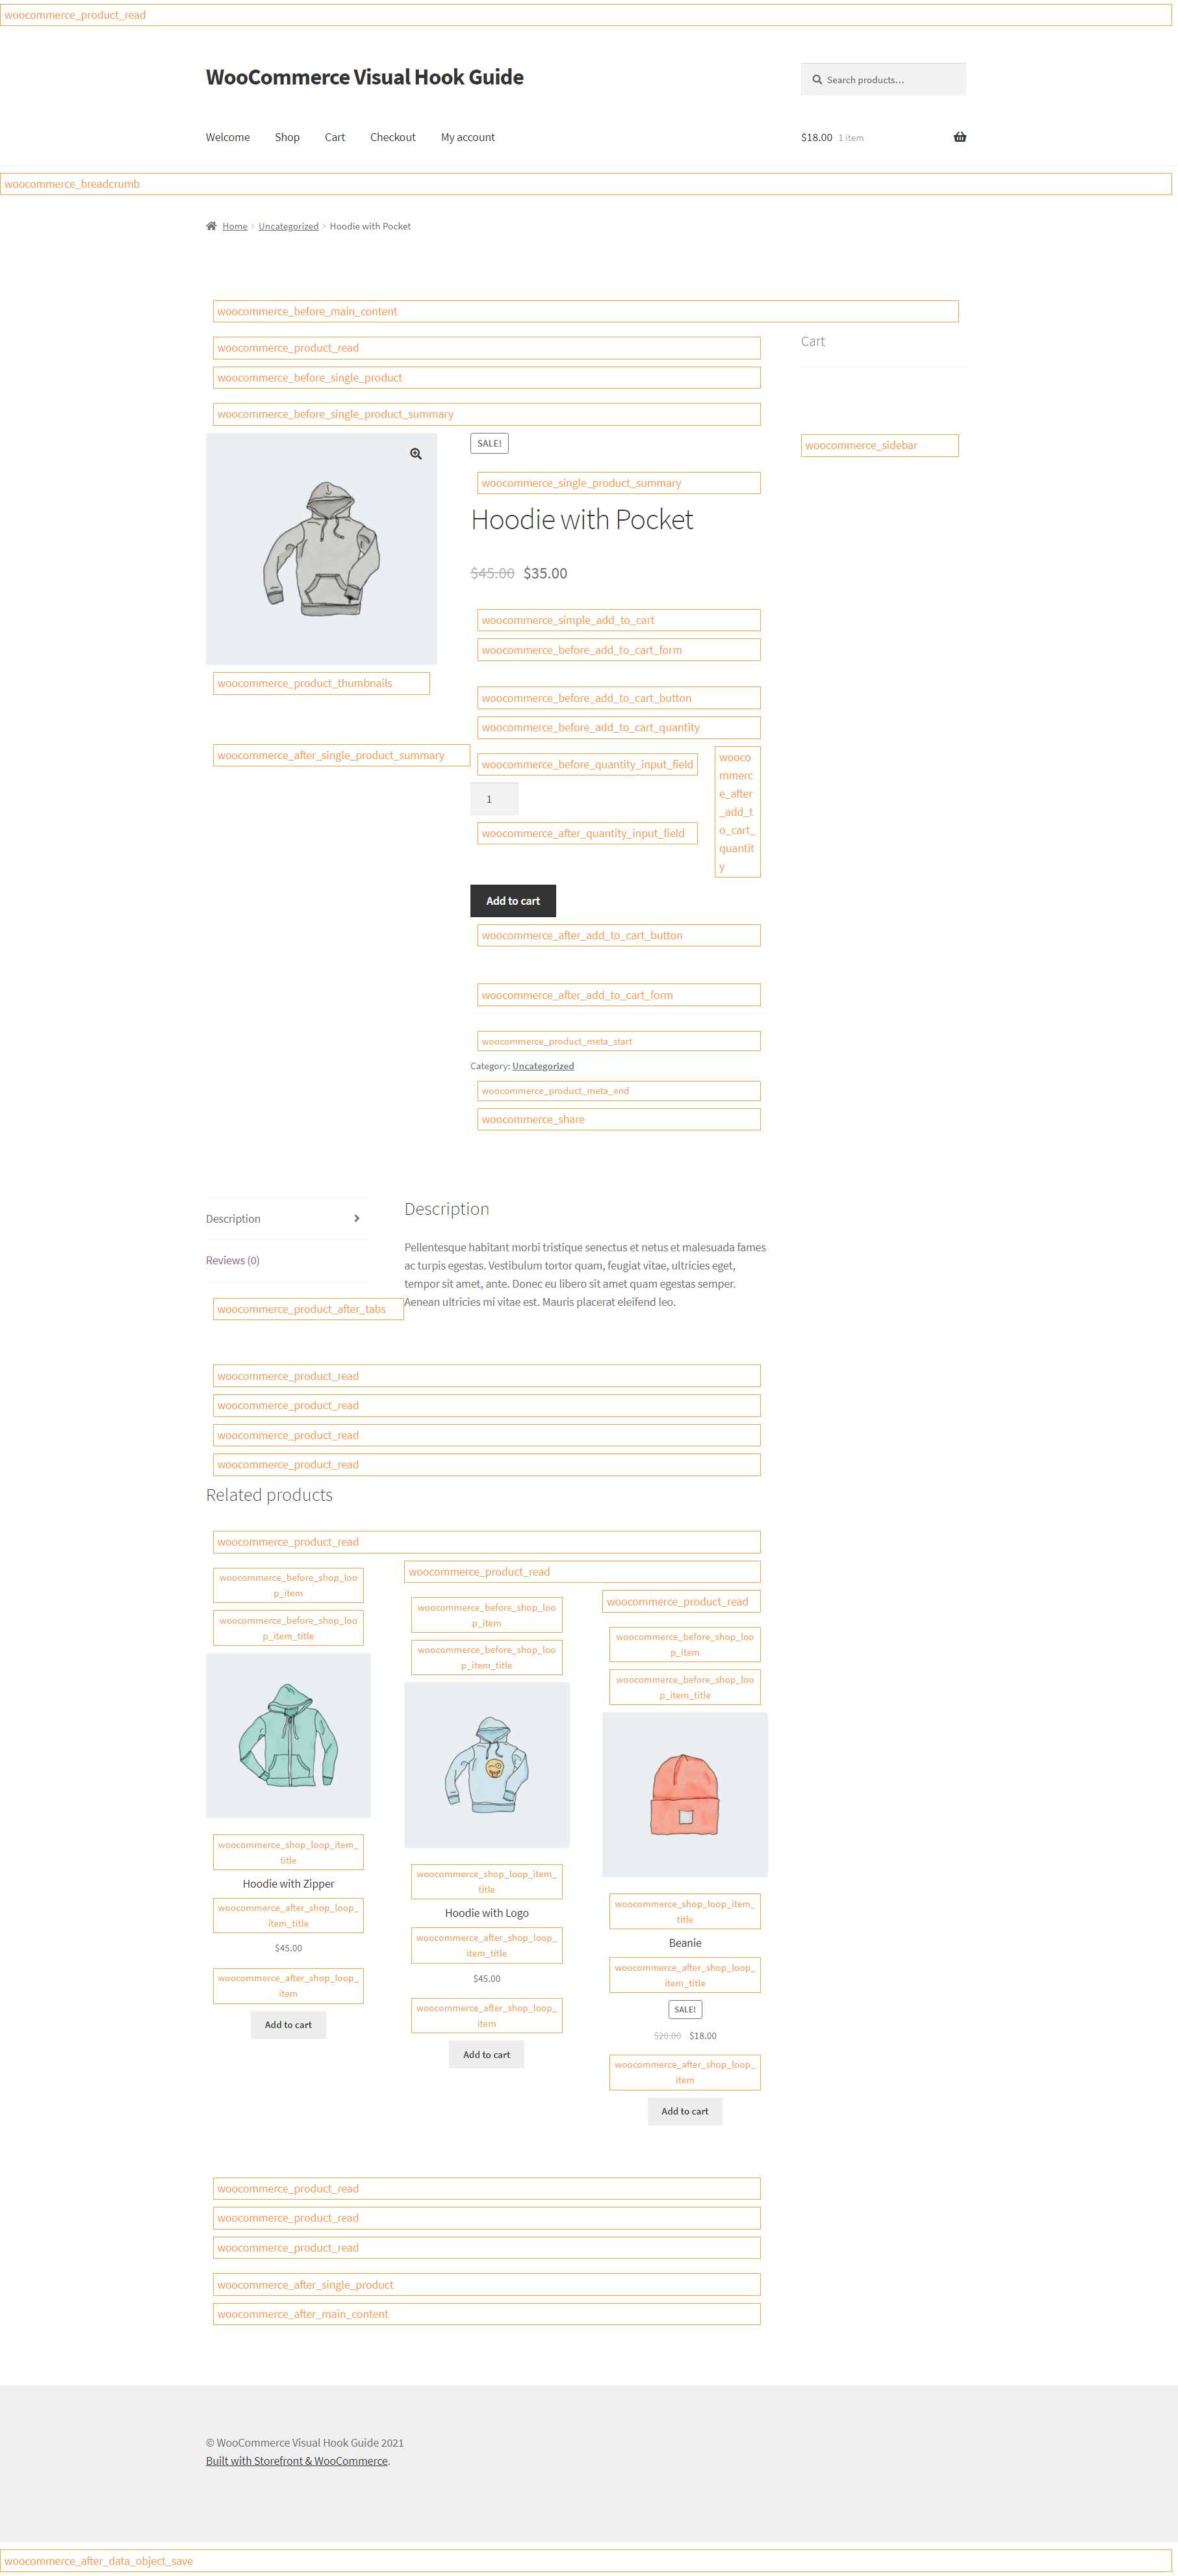 WooCommerce Single Product Page Hooks Visual Guide